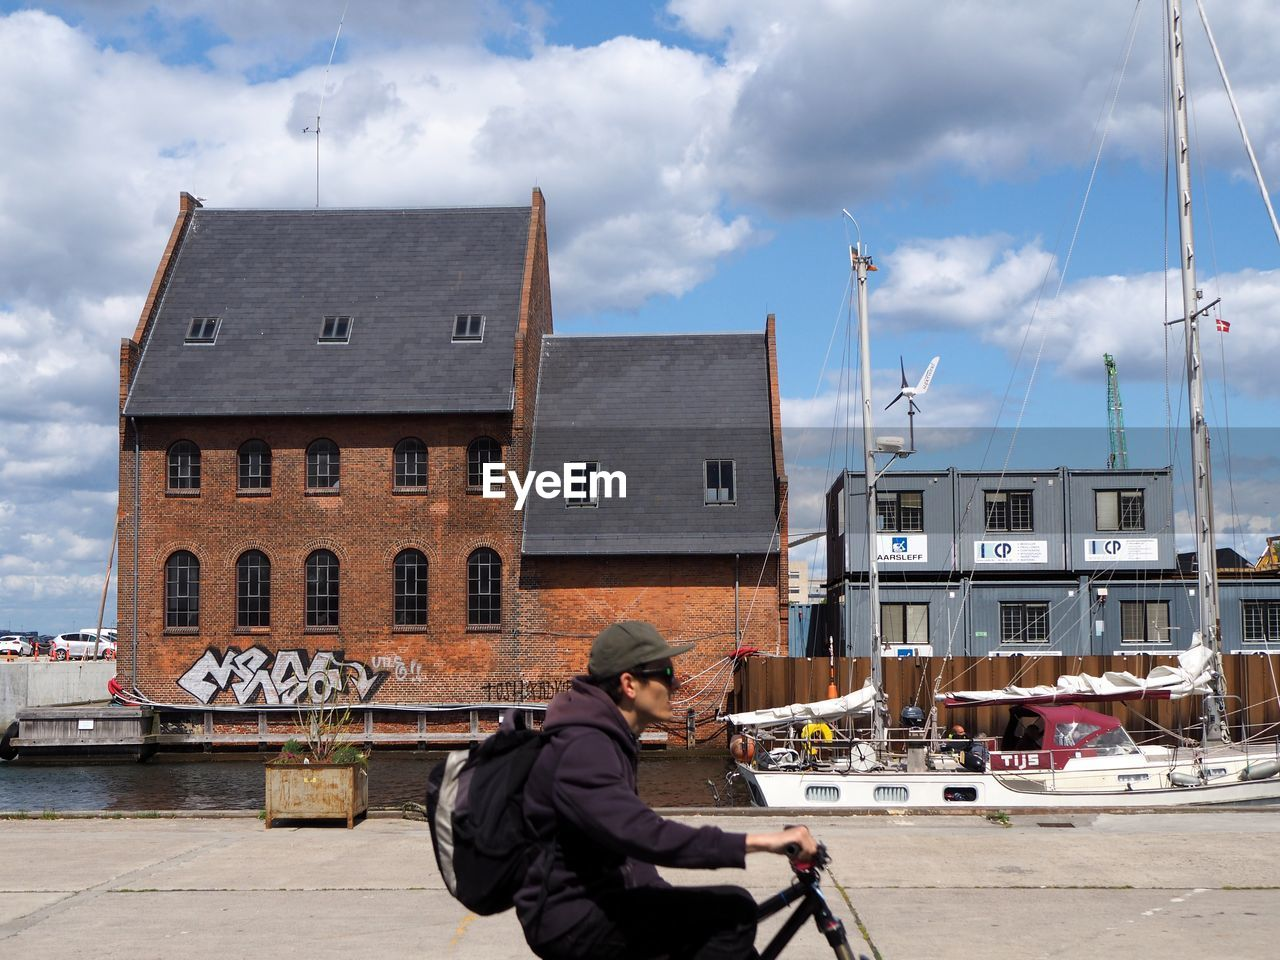 MAN IN BOAT AGAINST BUILDING IN CITY